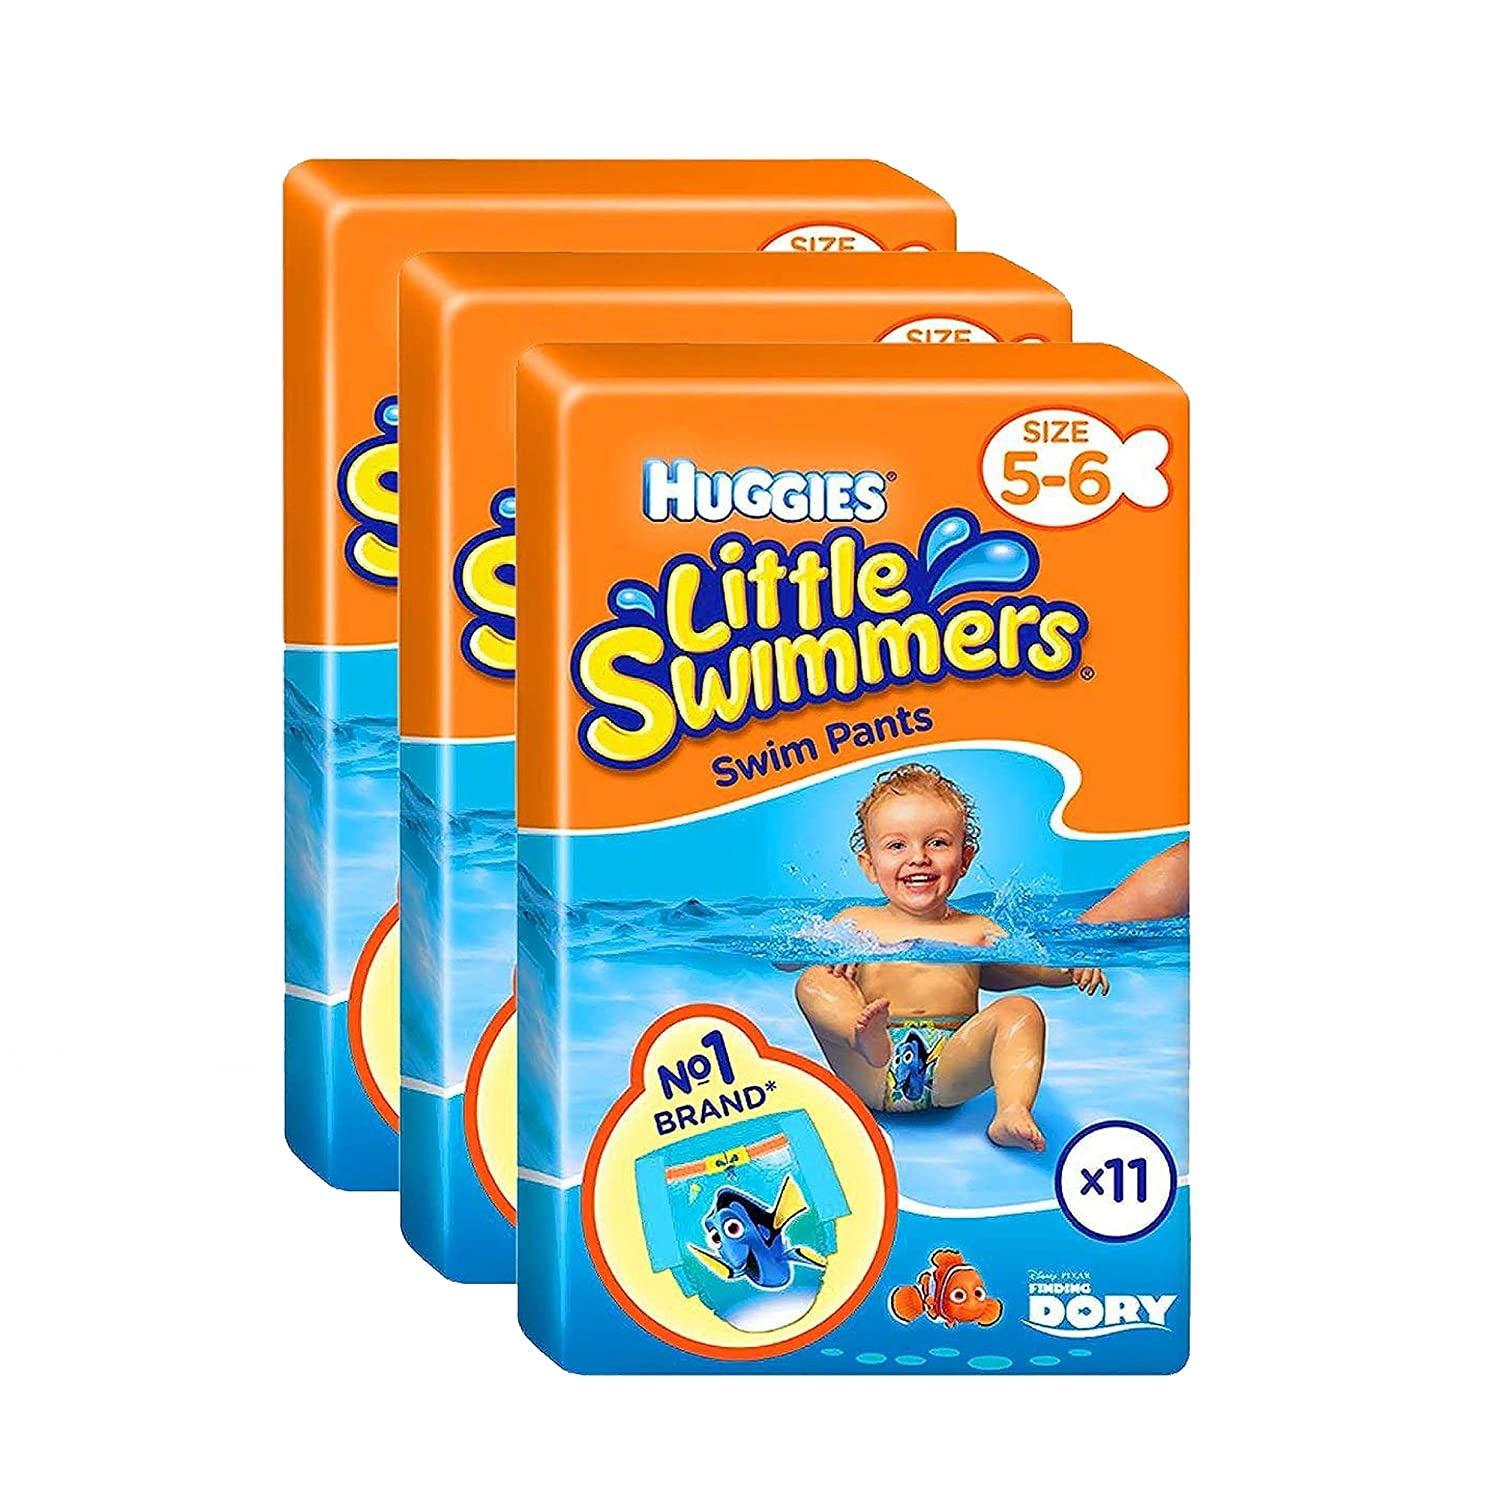 Huggies Little Swimmers Swim Pants Nappies Size 5-6 Baby 12-18kg Jumbo Pack of 33